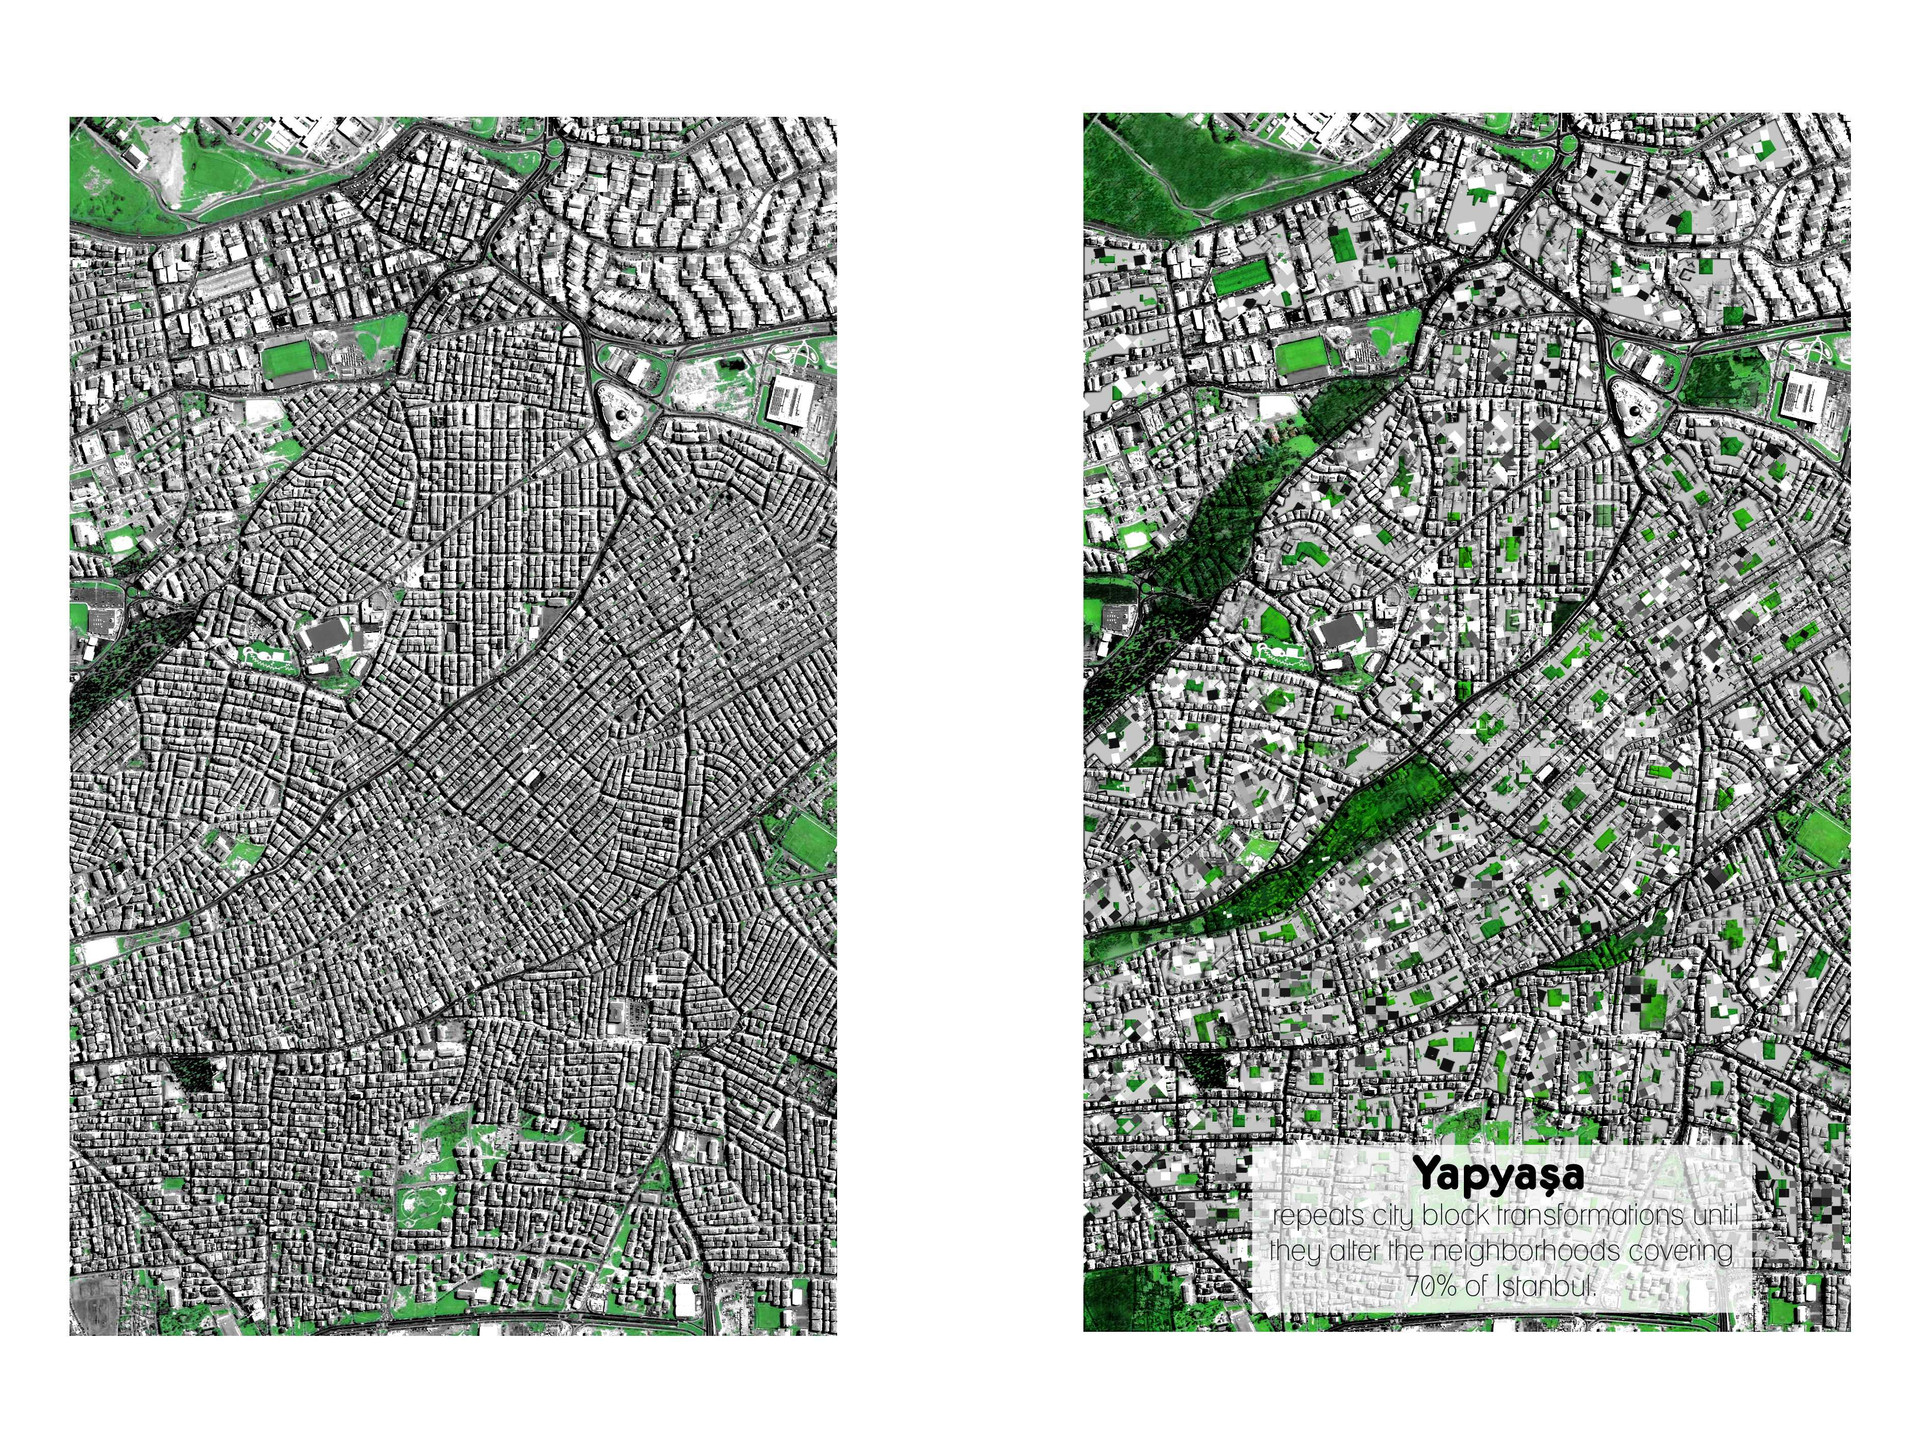 Yapyaşa repeats city block transformations until they alter the neighborhoods covering 70% of Istanbul. All rights reserved